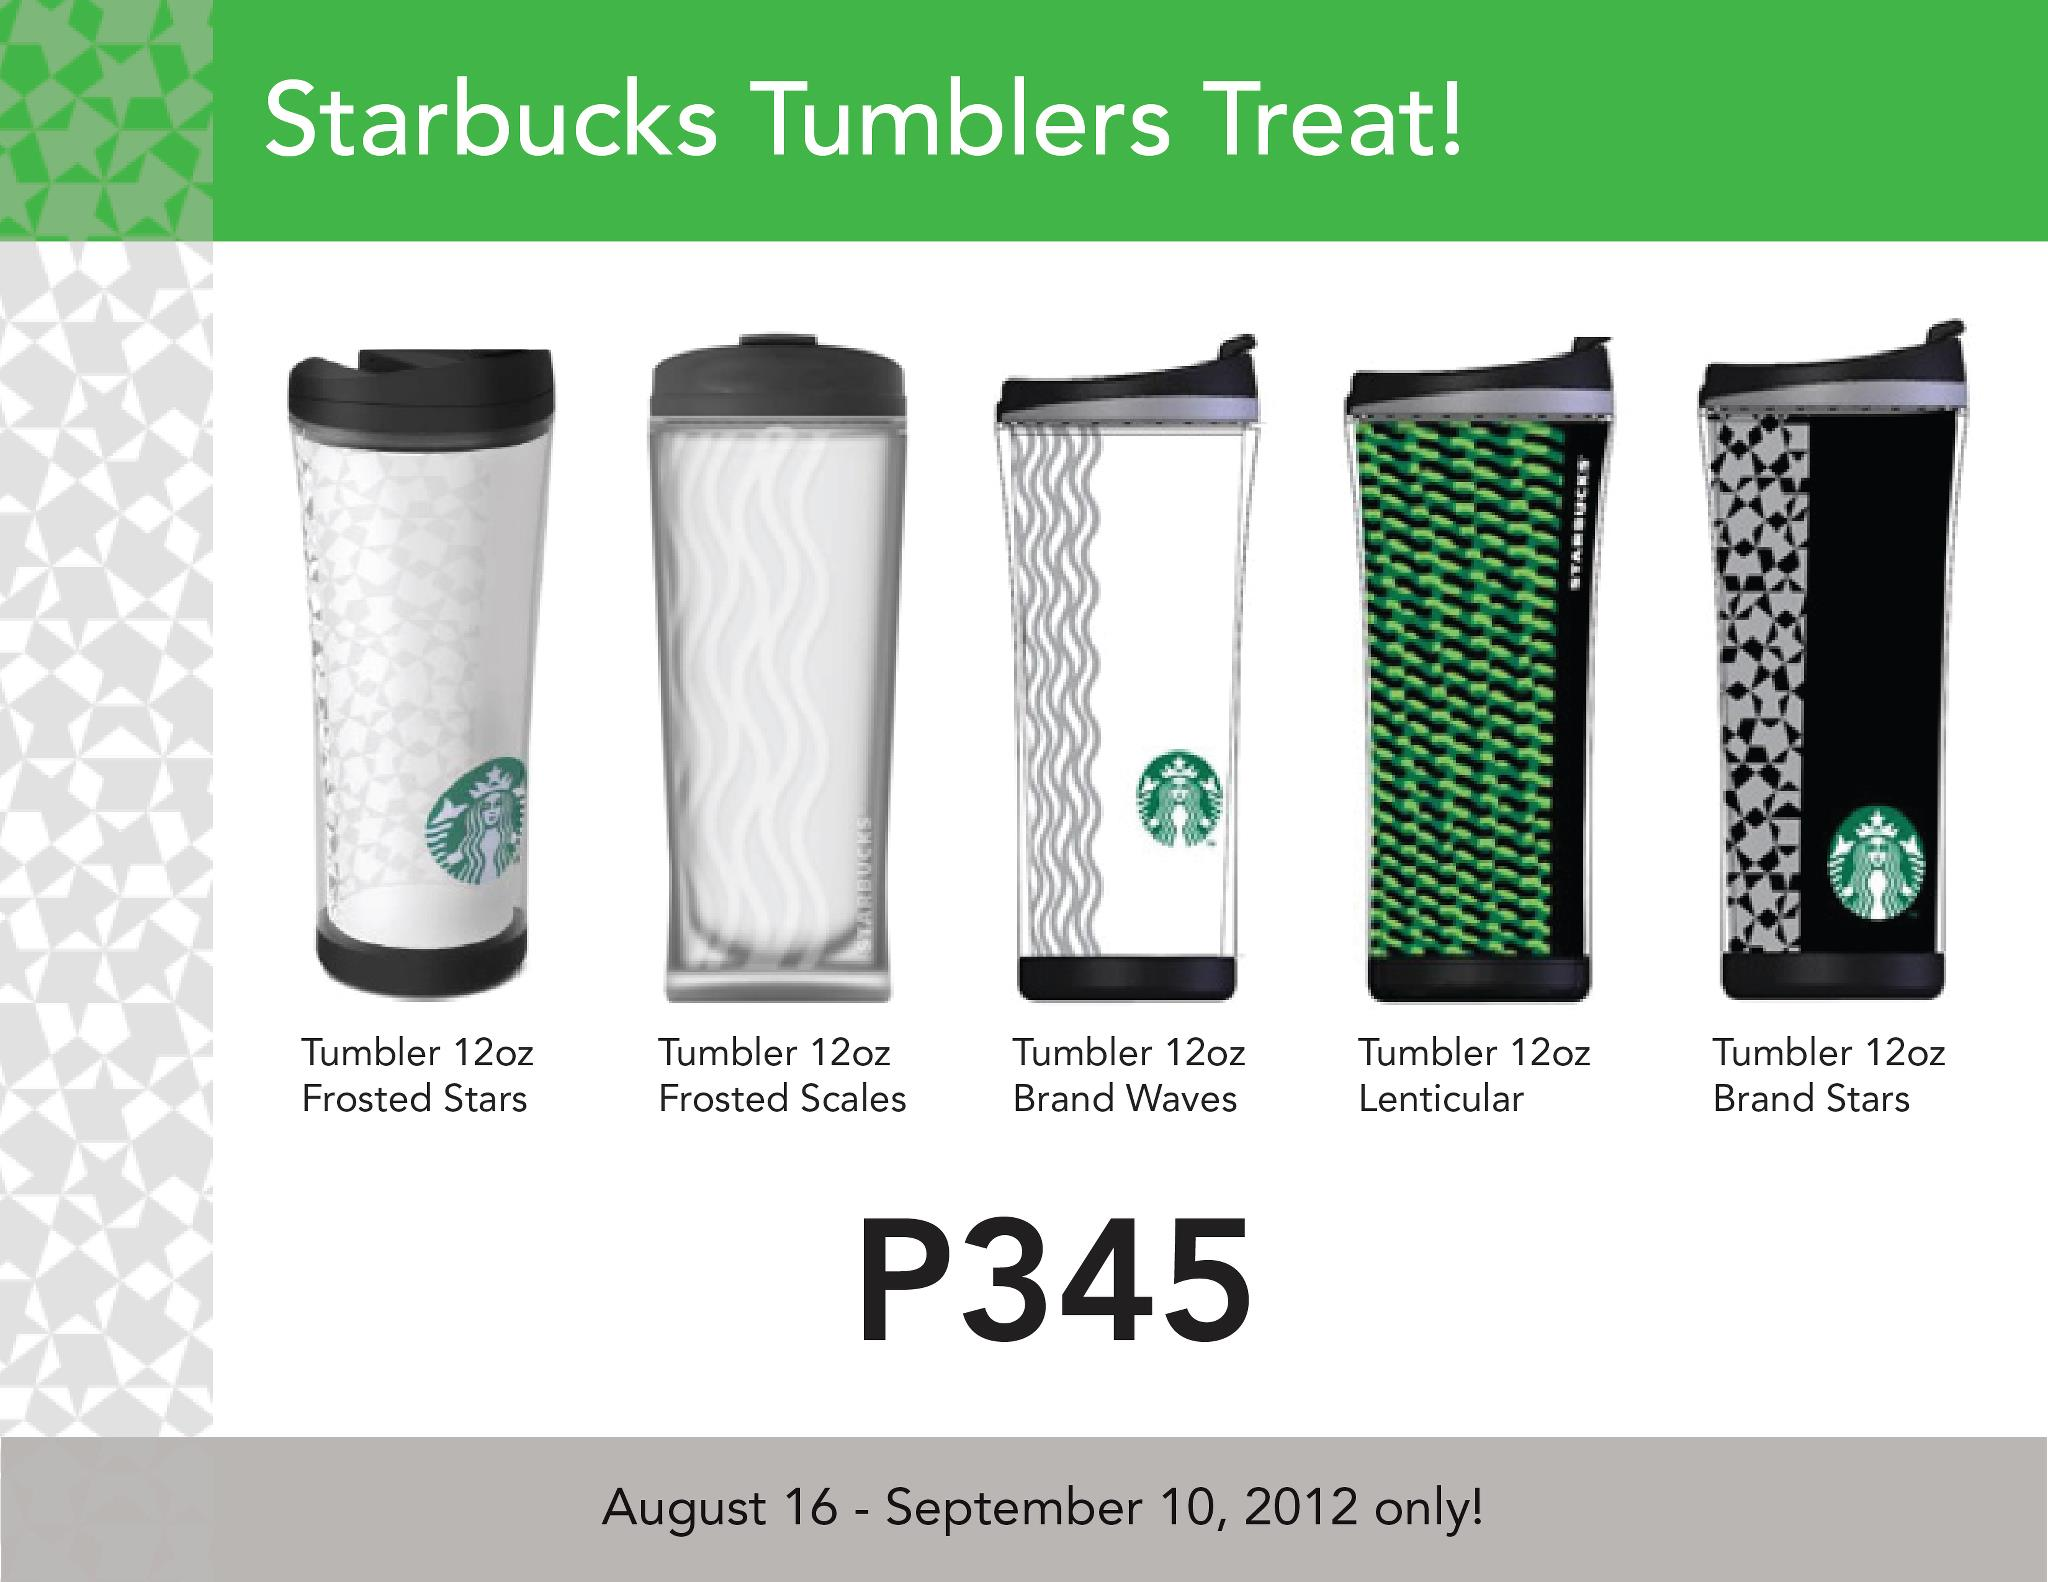 Starbucks Tumblers Treat August  - September 2012